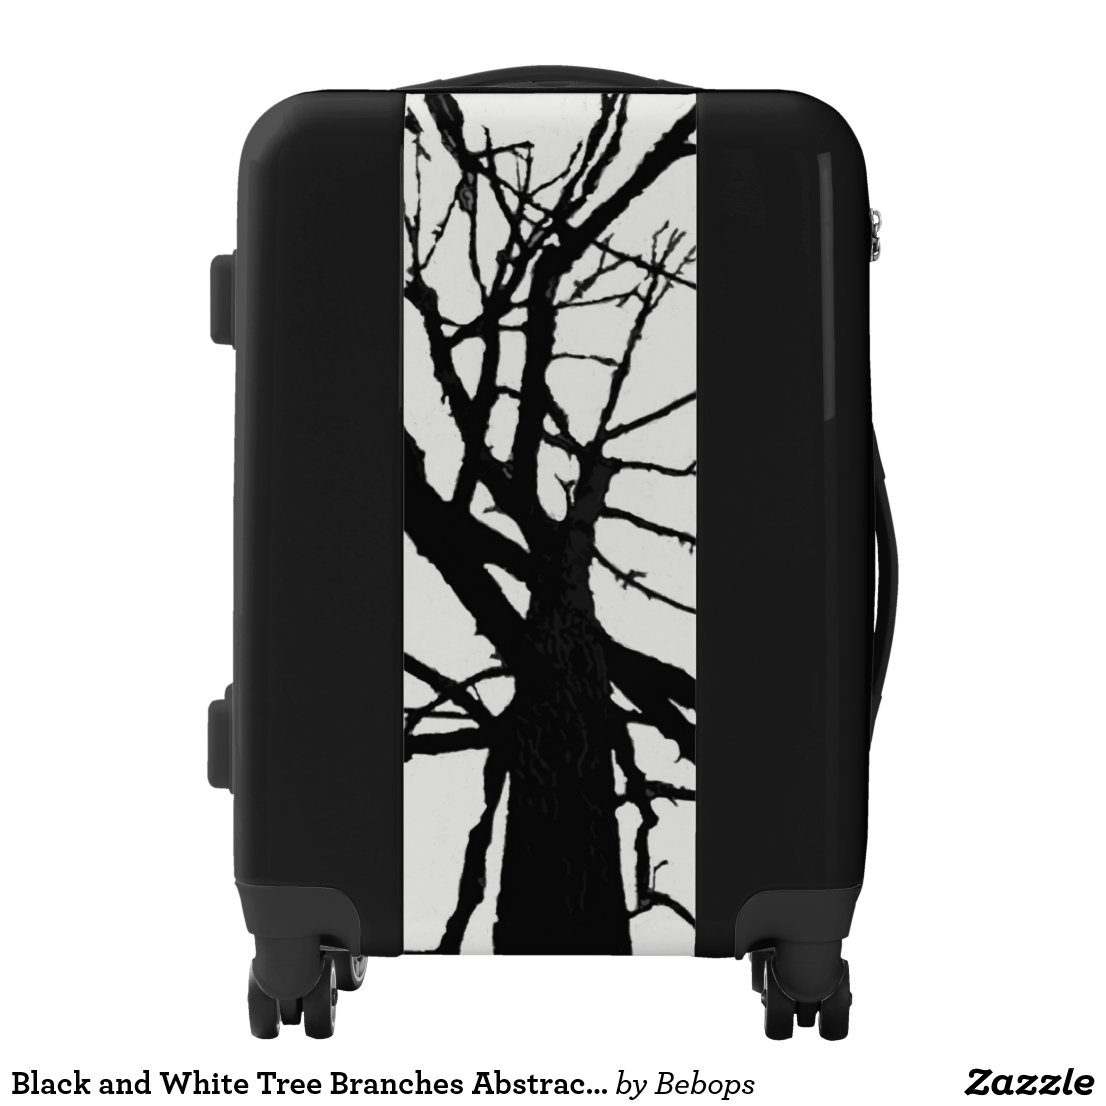 Black and White Tree Branches Abstract Luggage